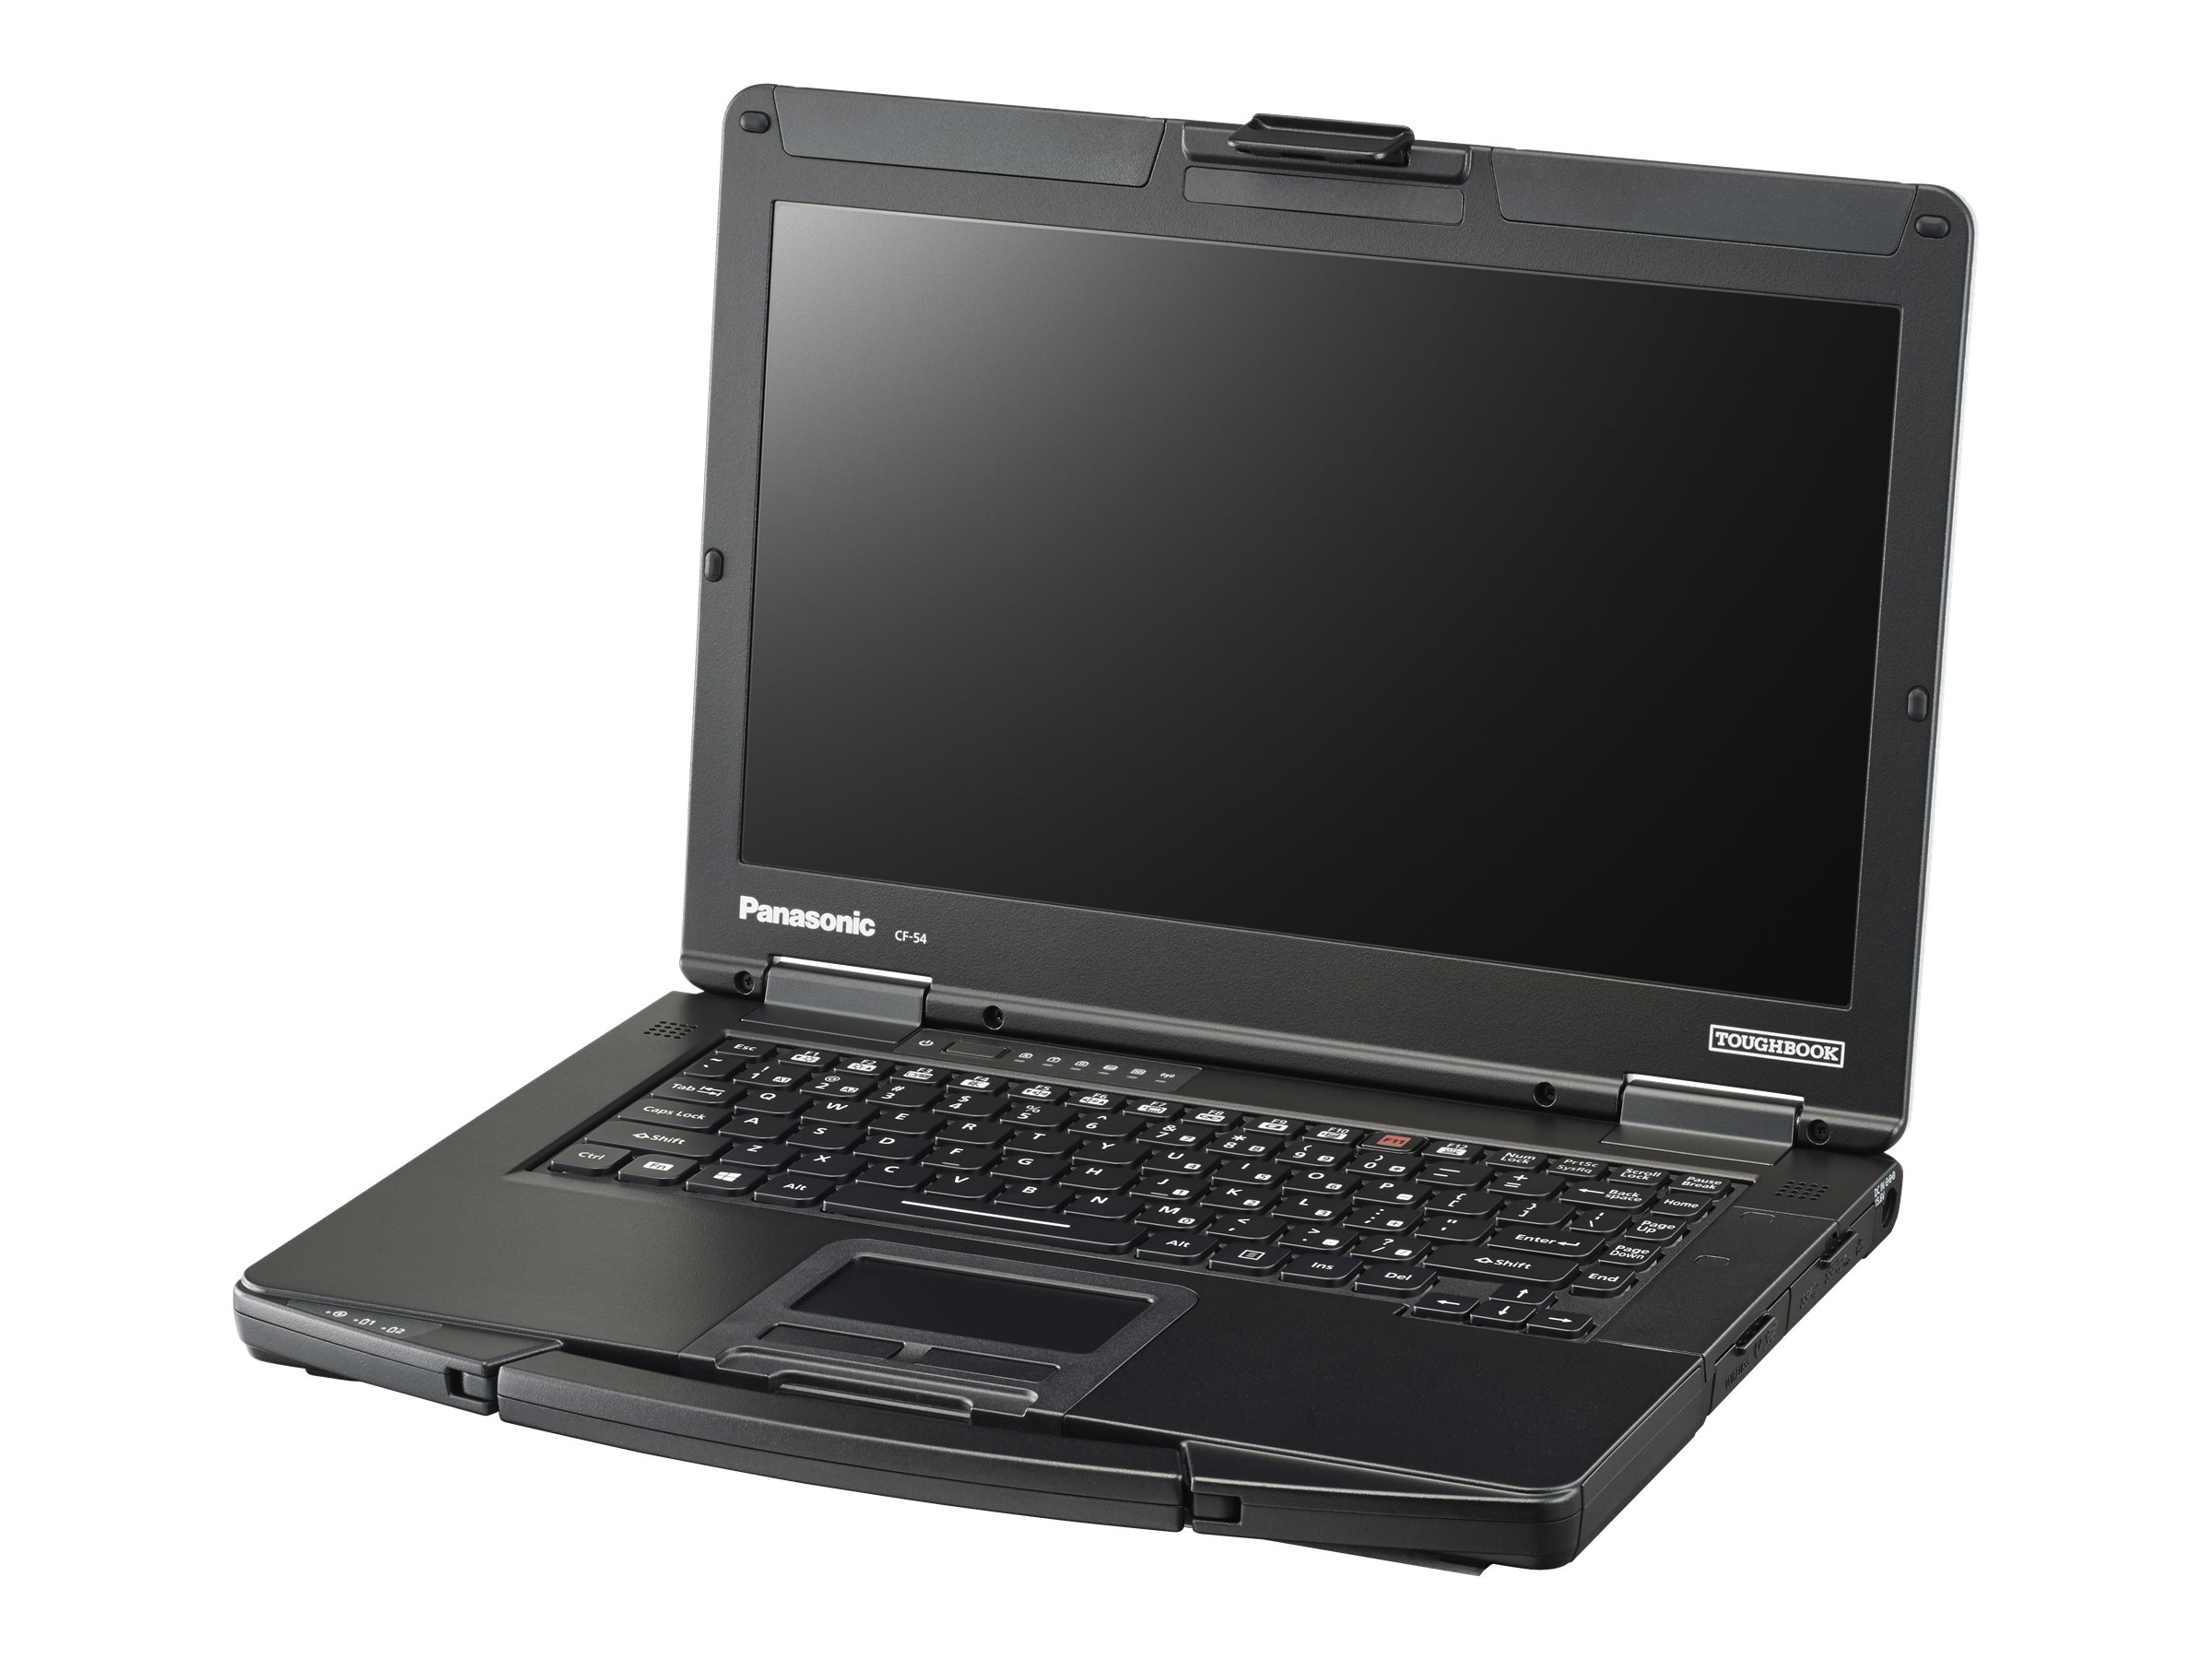 Panasonic Toughbook 54 2.4GHz Core i5 14in display, CF-54F1448VM